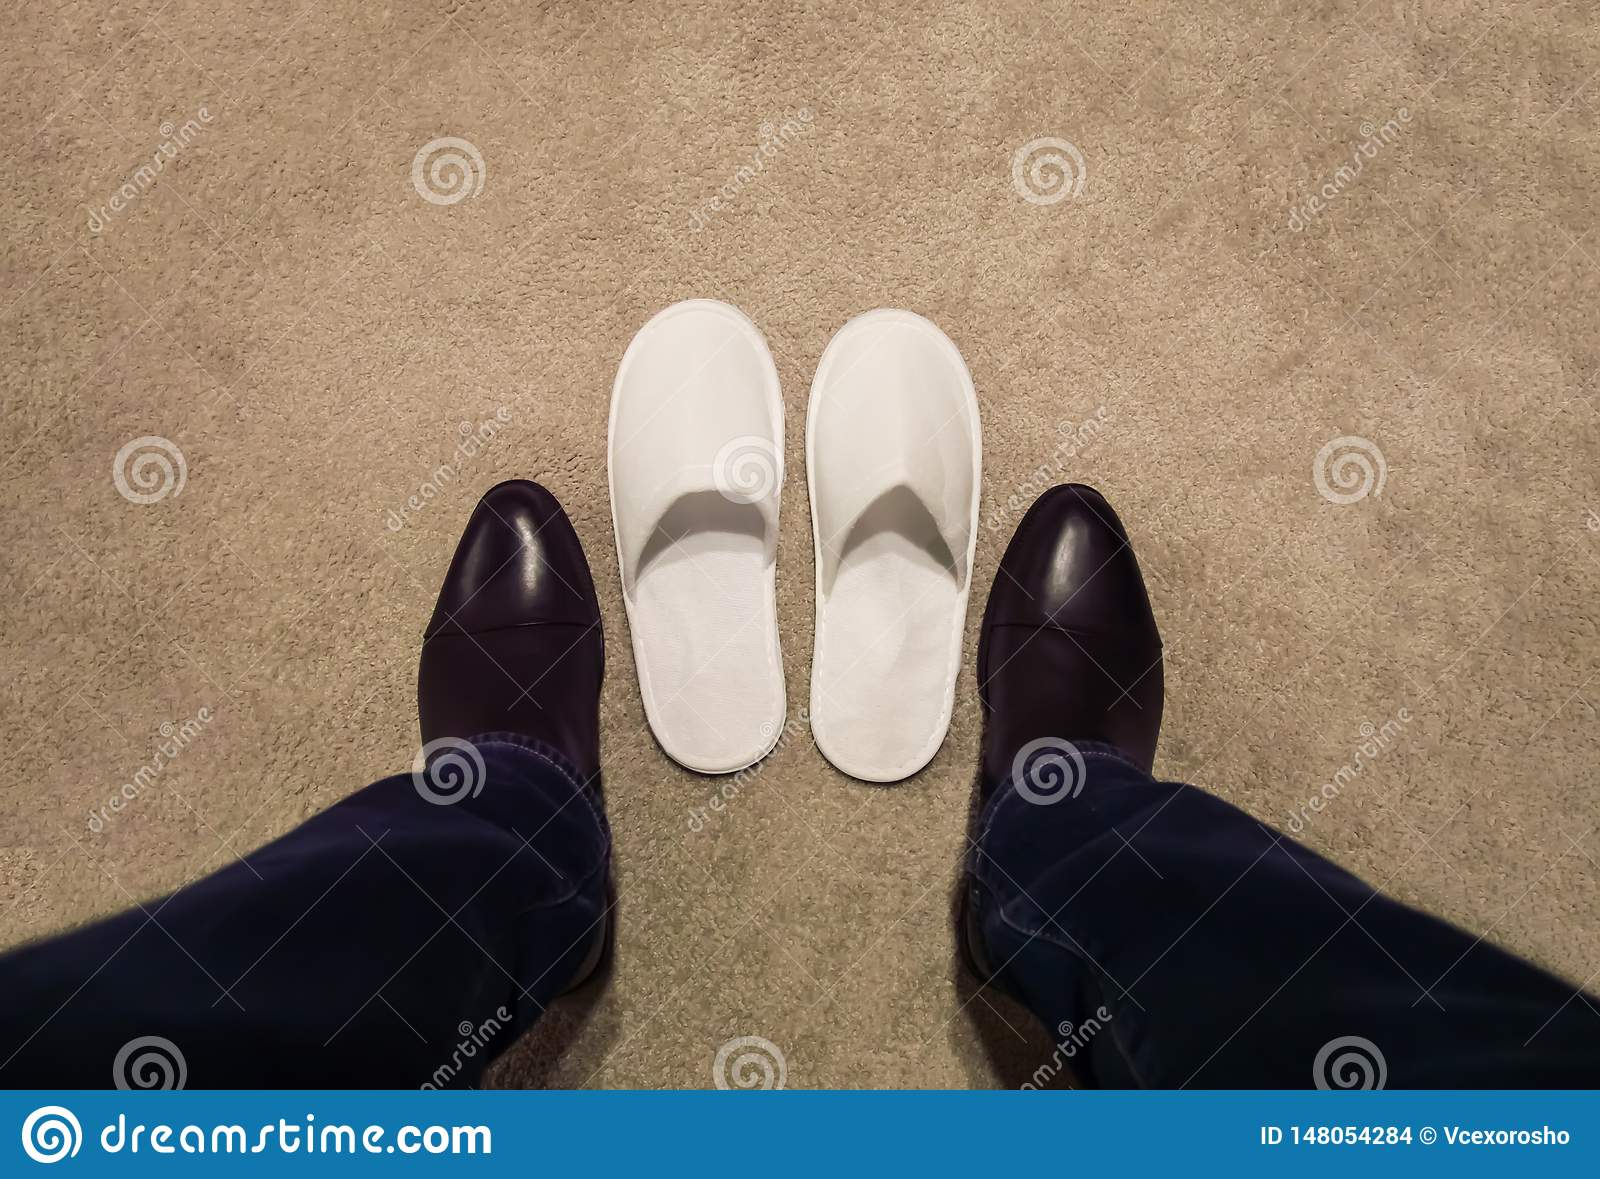 A man changes his shoes, takes off his shoes, he wears white slippers